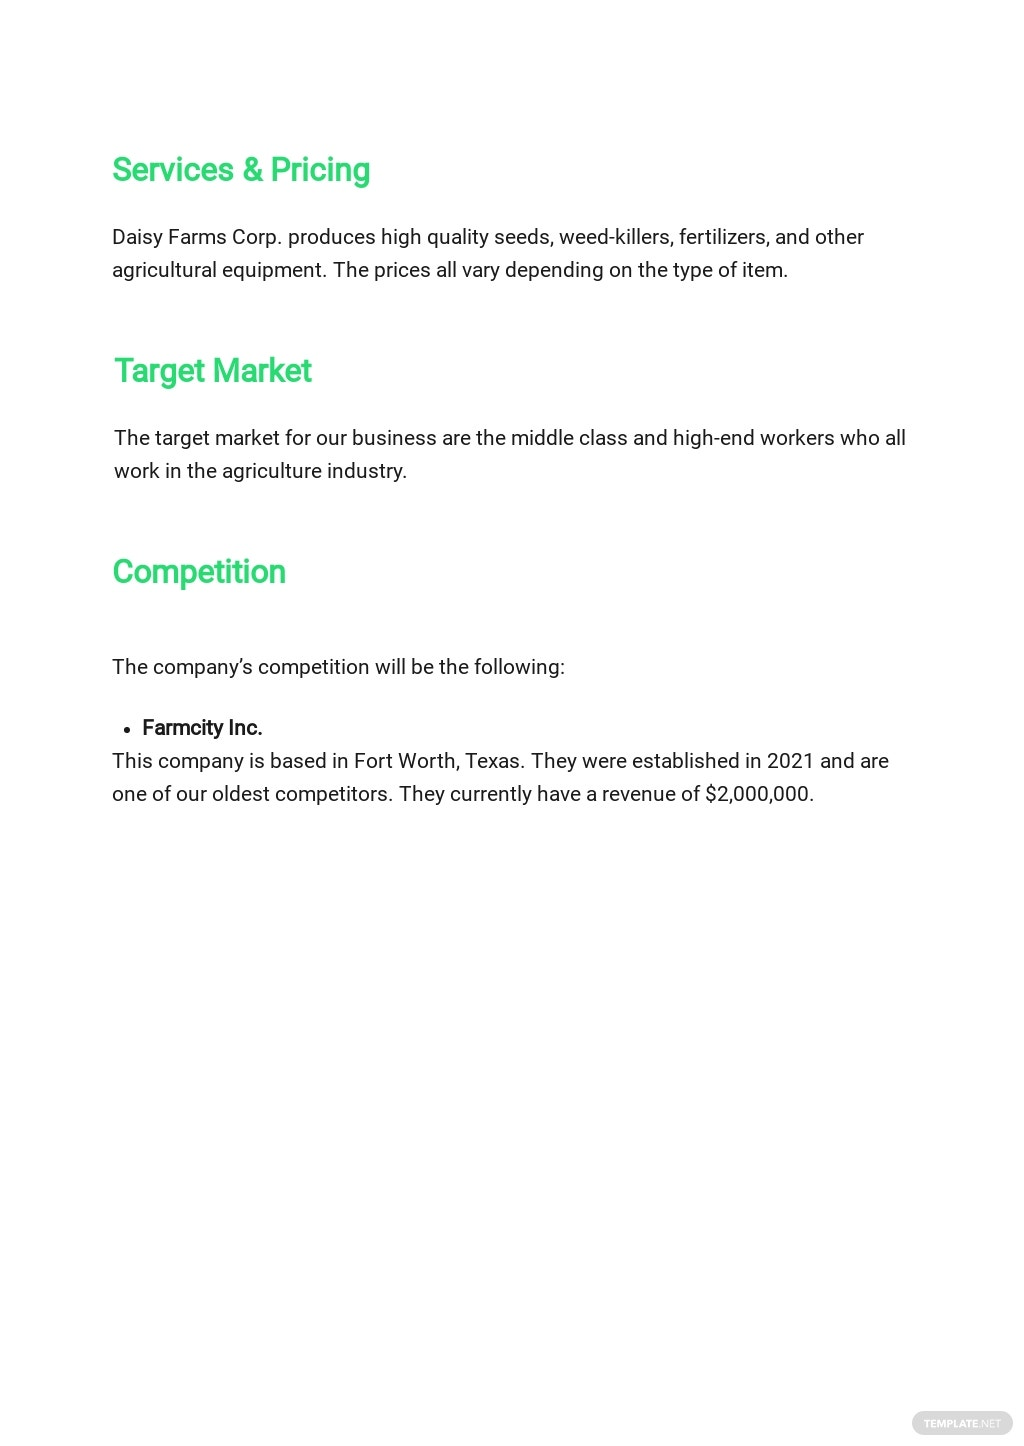 Agriculture Business Plan Template 2.jpe